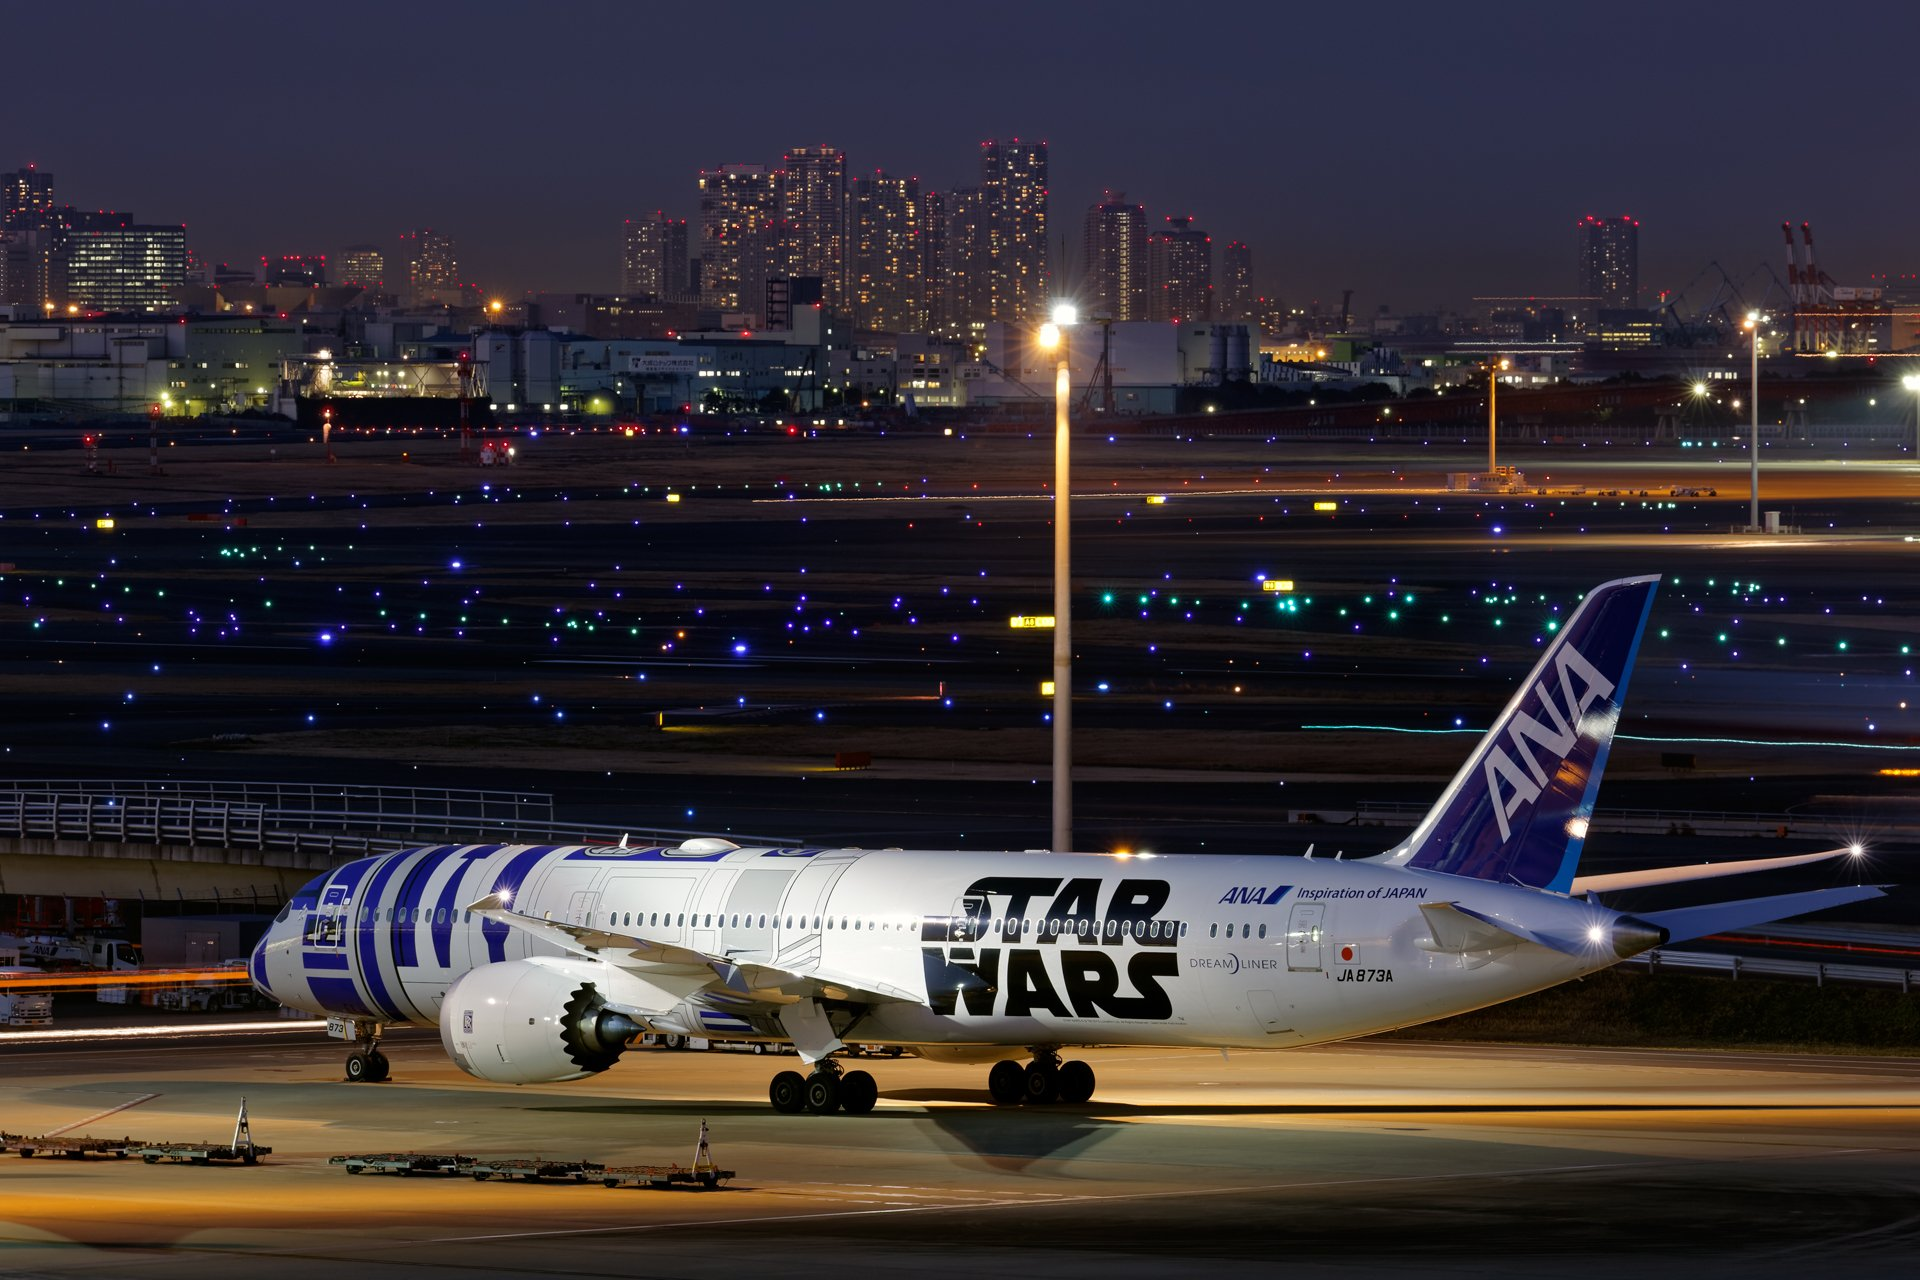 Boeing 787 Dreamliner In The R2 D2 Star Wars Livery Hd